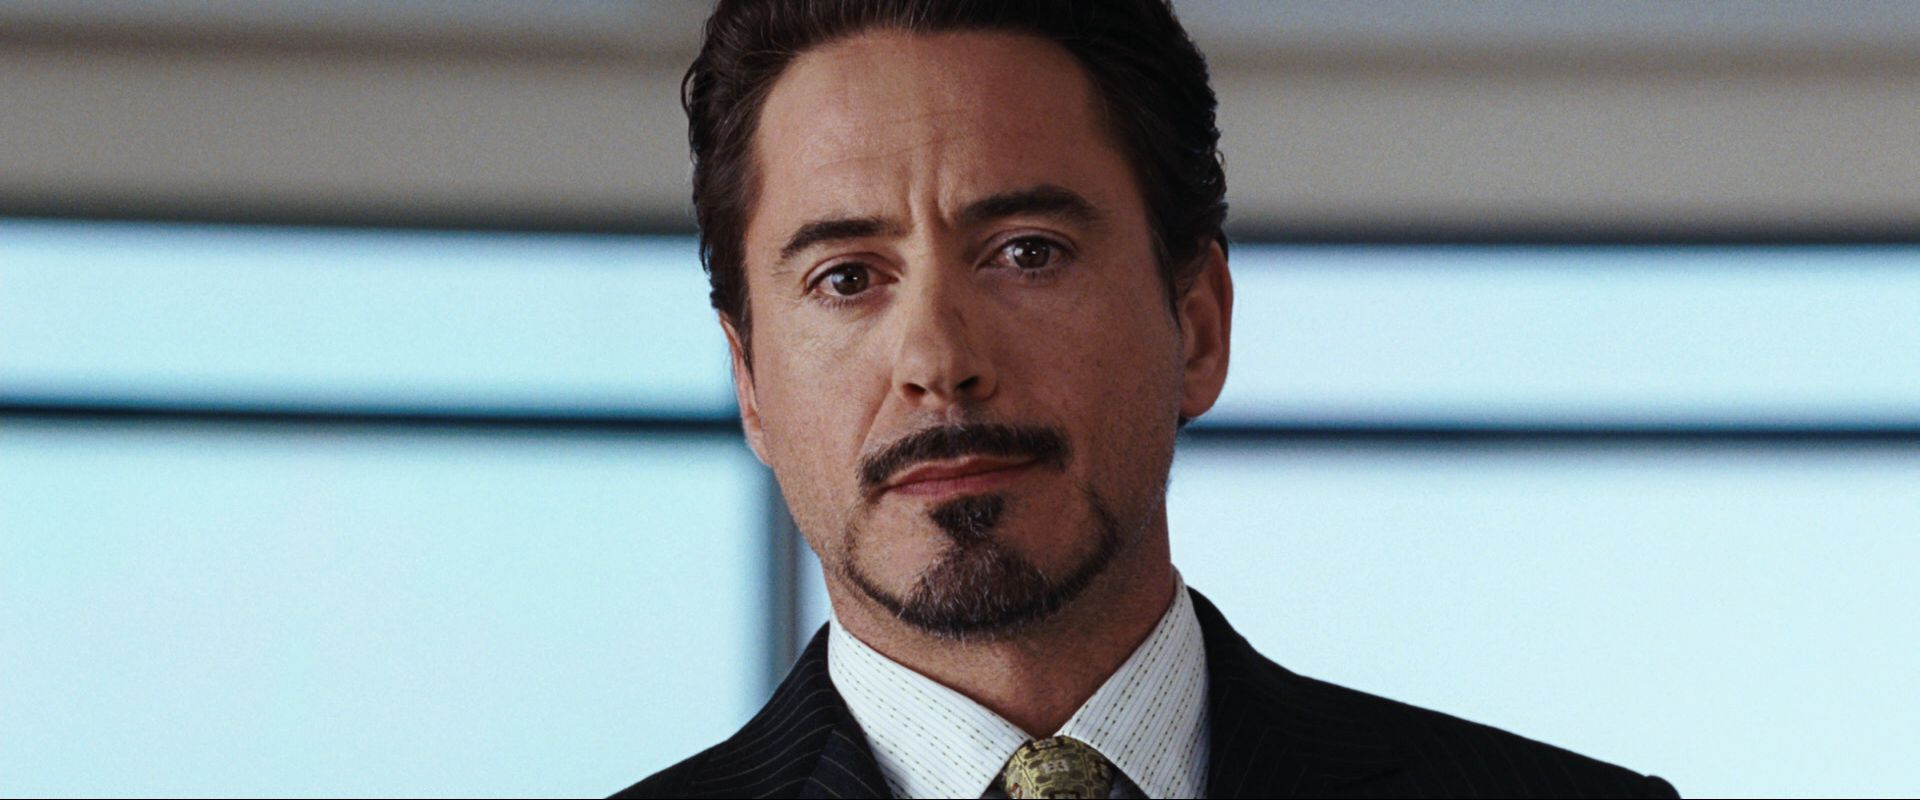 Enjoyable Style Of Tony Stark Beard Name And Pictures Help Hairstyles For Women Draintrainus